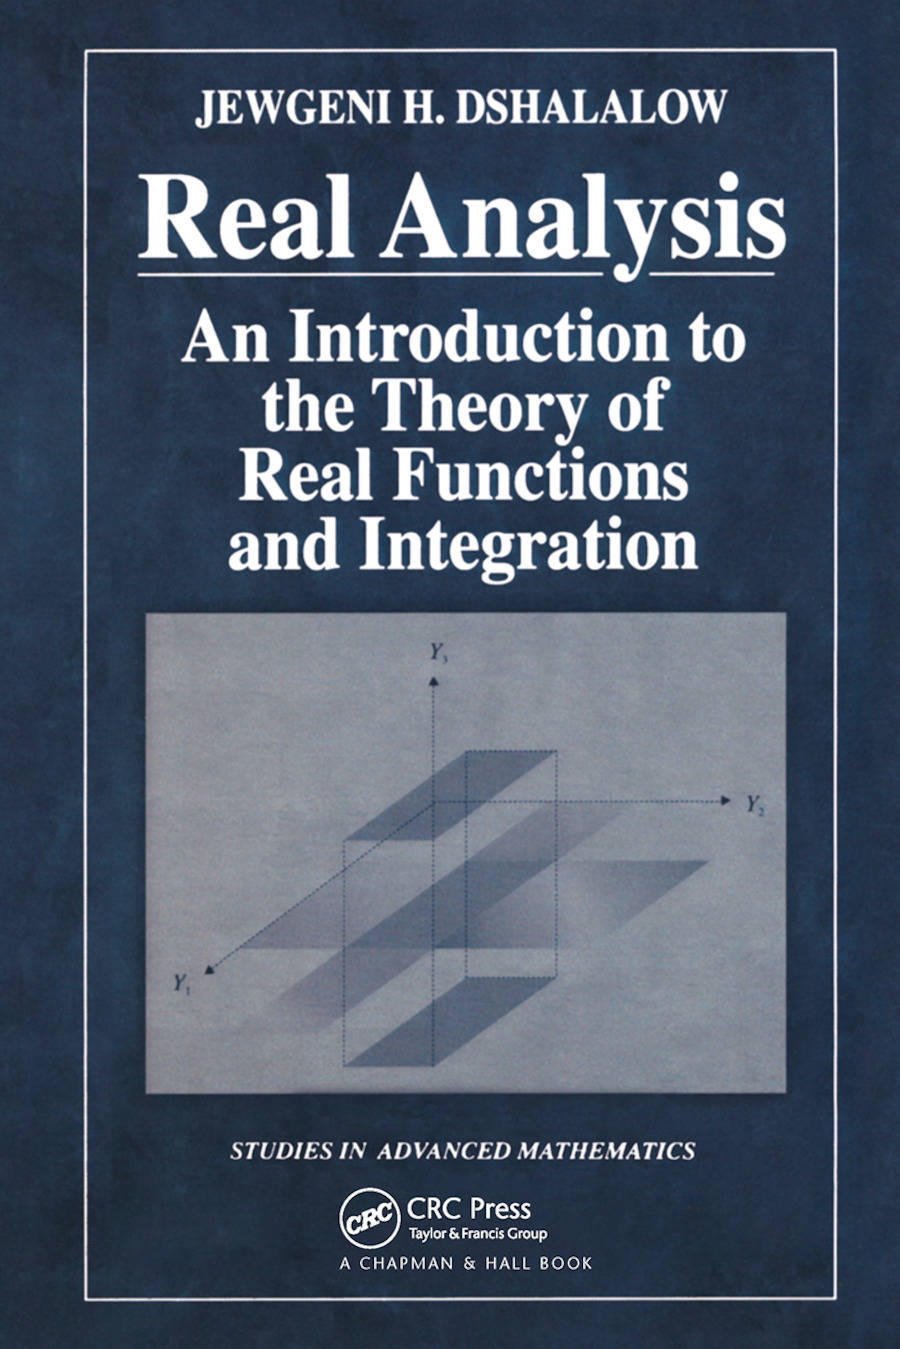 Real Analysis: An Introduction to the Theory of Real Functions and Integration book cover